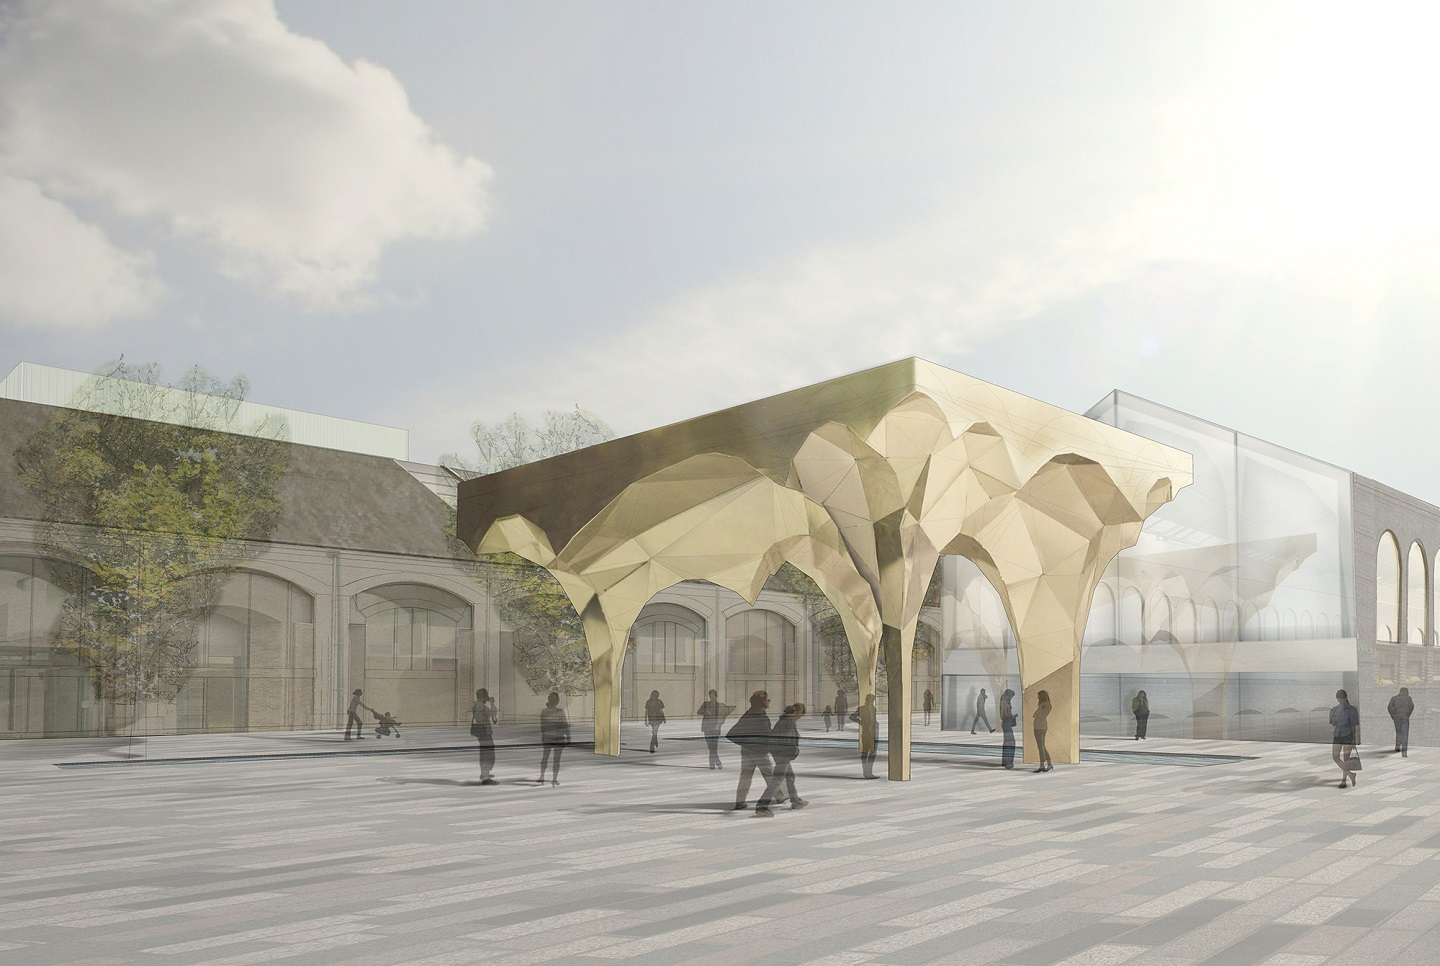 Cubitt-square-kings-cross-competition-canopy-London-Central-Limited-Partnership-design-invitation-Jamie-Fobert-architects-1